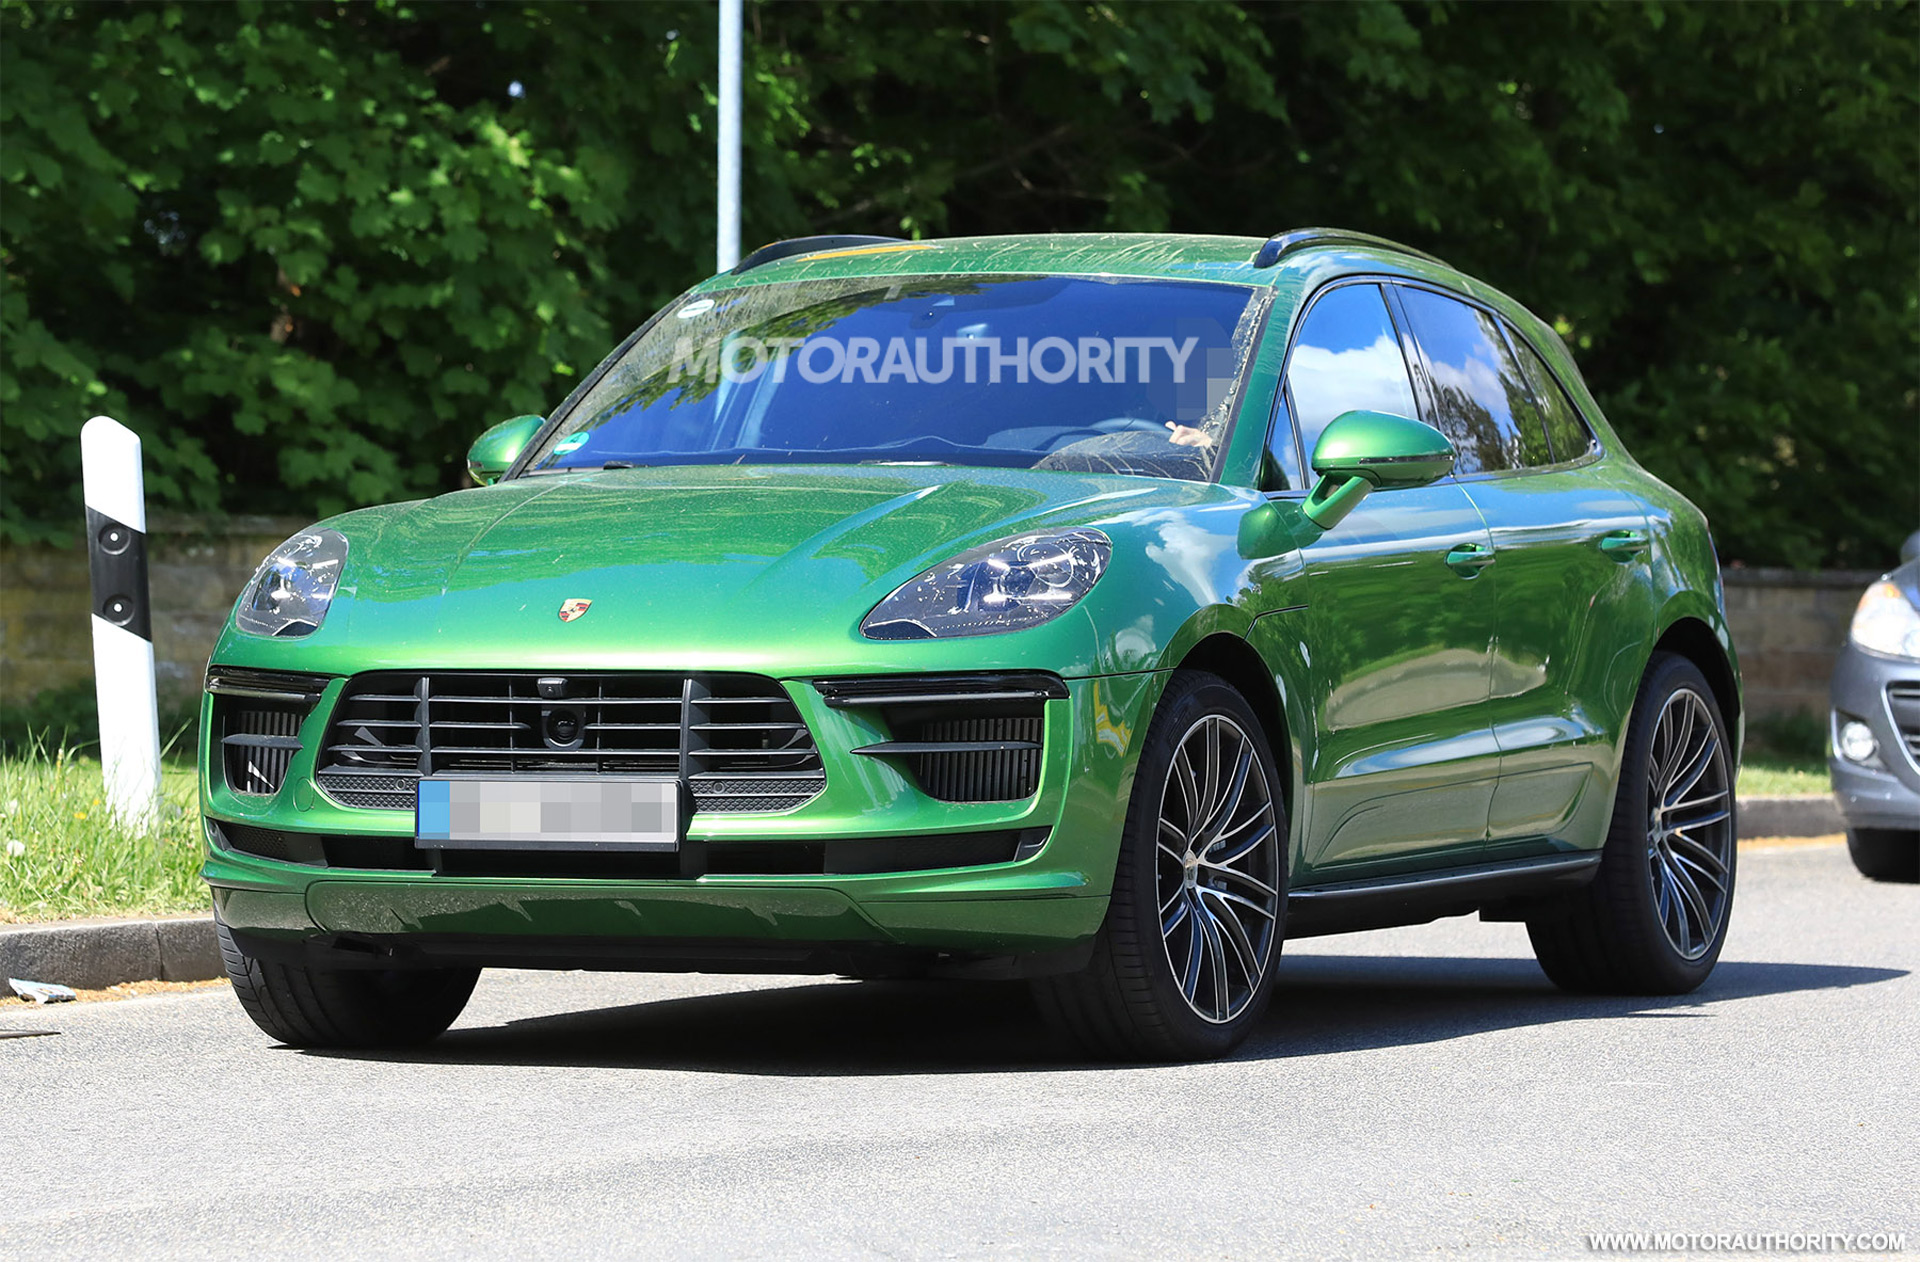 99 The 2019 Porsche Macan Turbo Price Design and Review